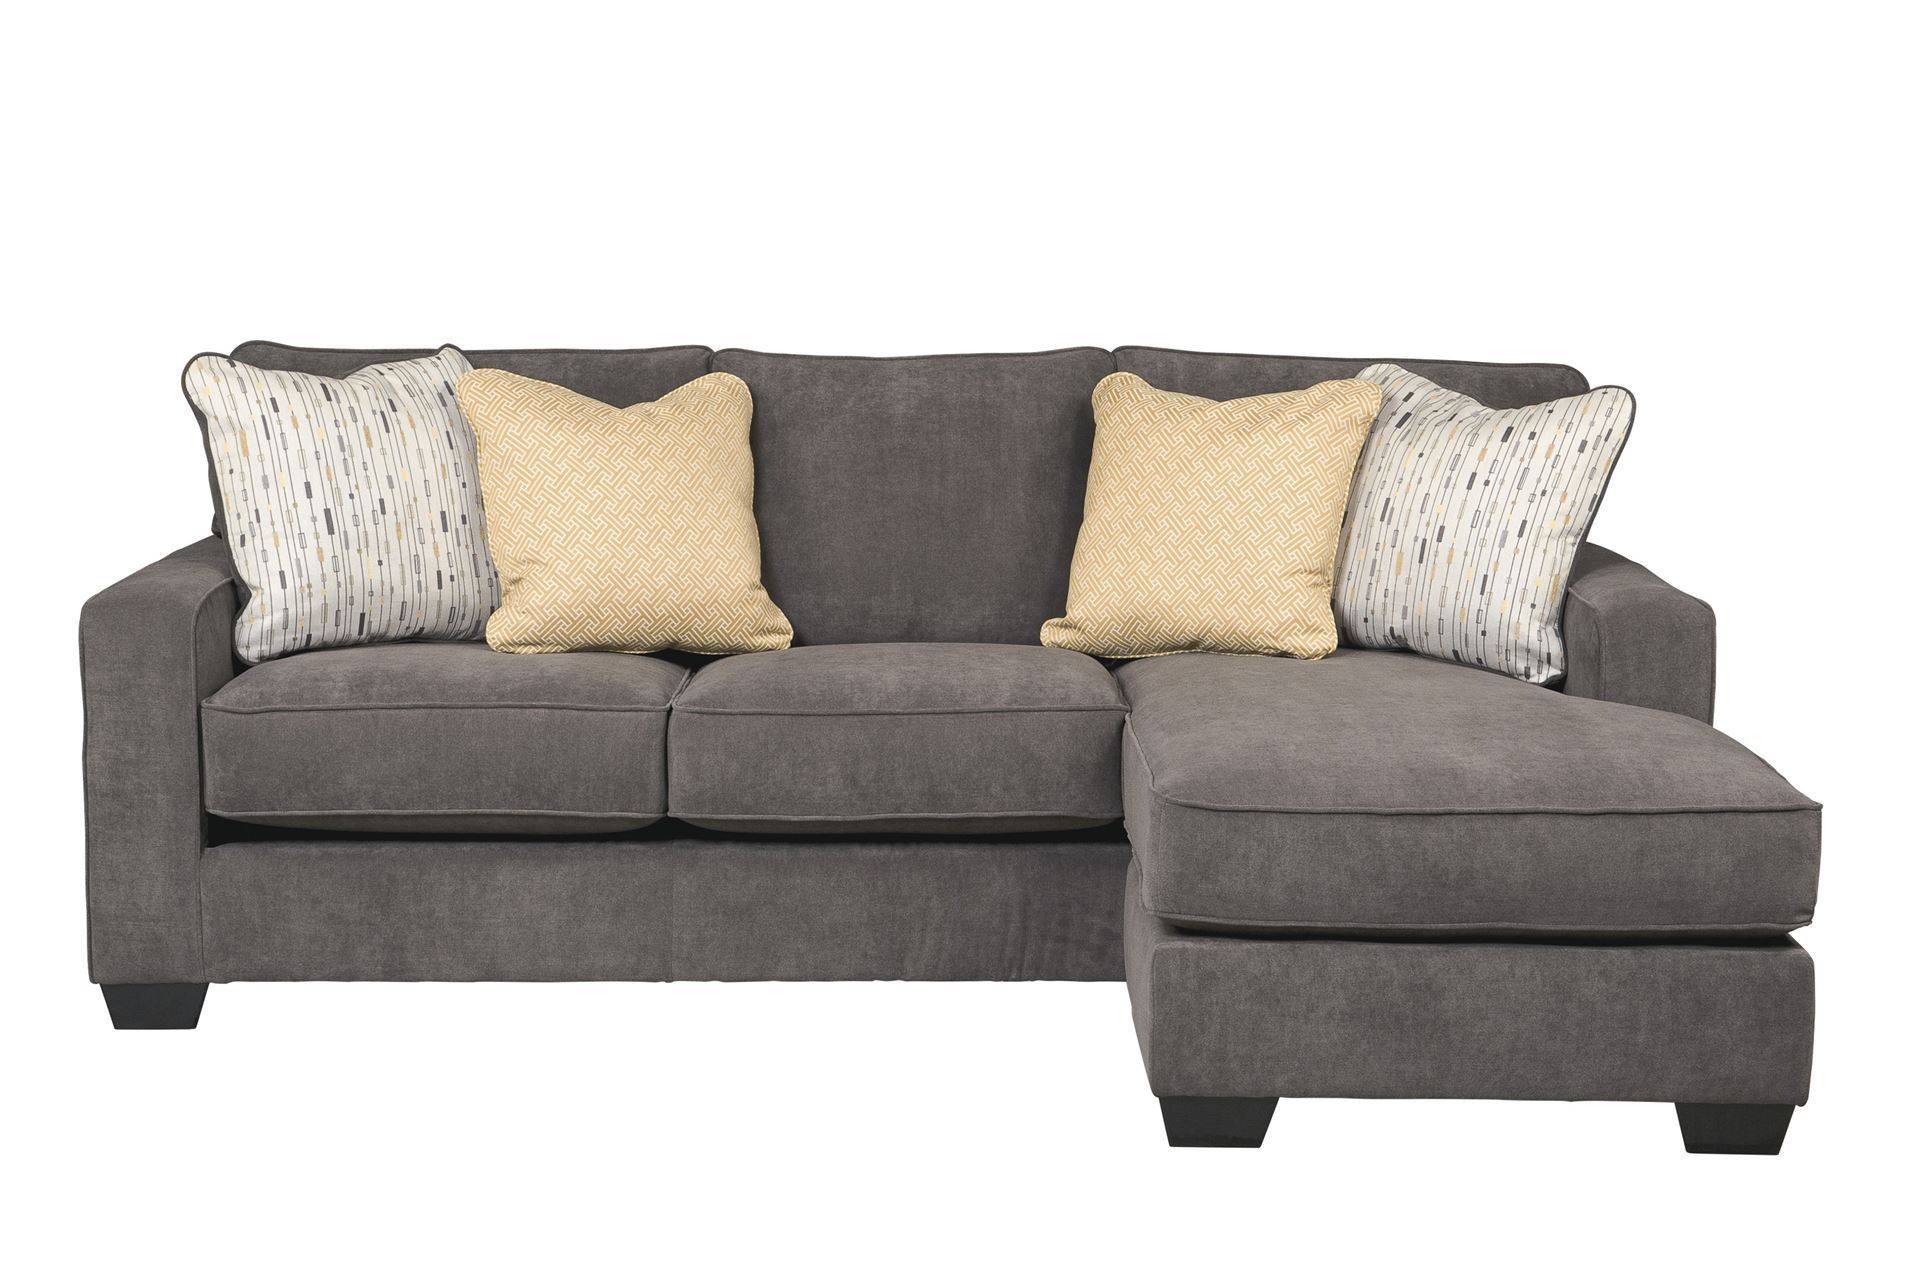 rectangular gray l as people lounge fabric sectional with comfortable to stylish renovation superb sofa chaise pillows and loveseat for intended two shaped sit design plus classic sofas uncategorized small